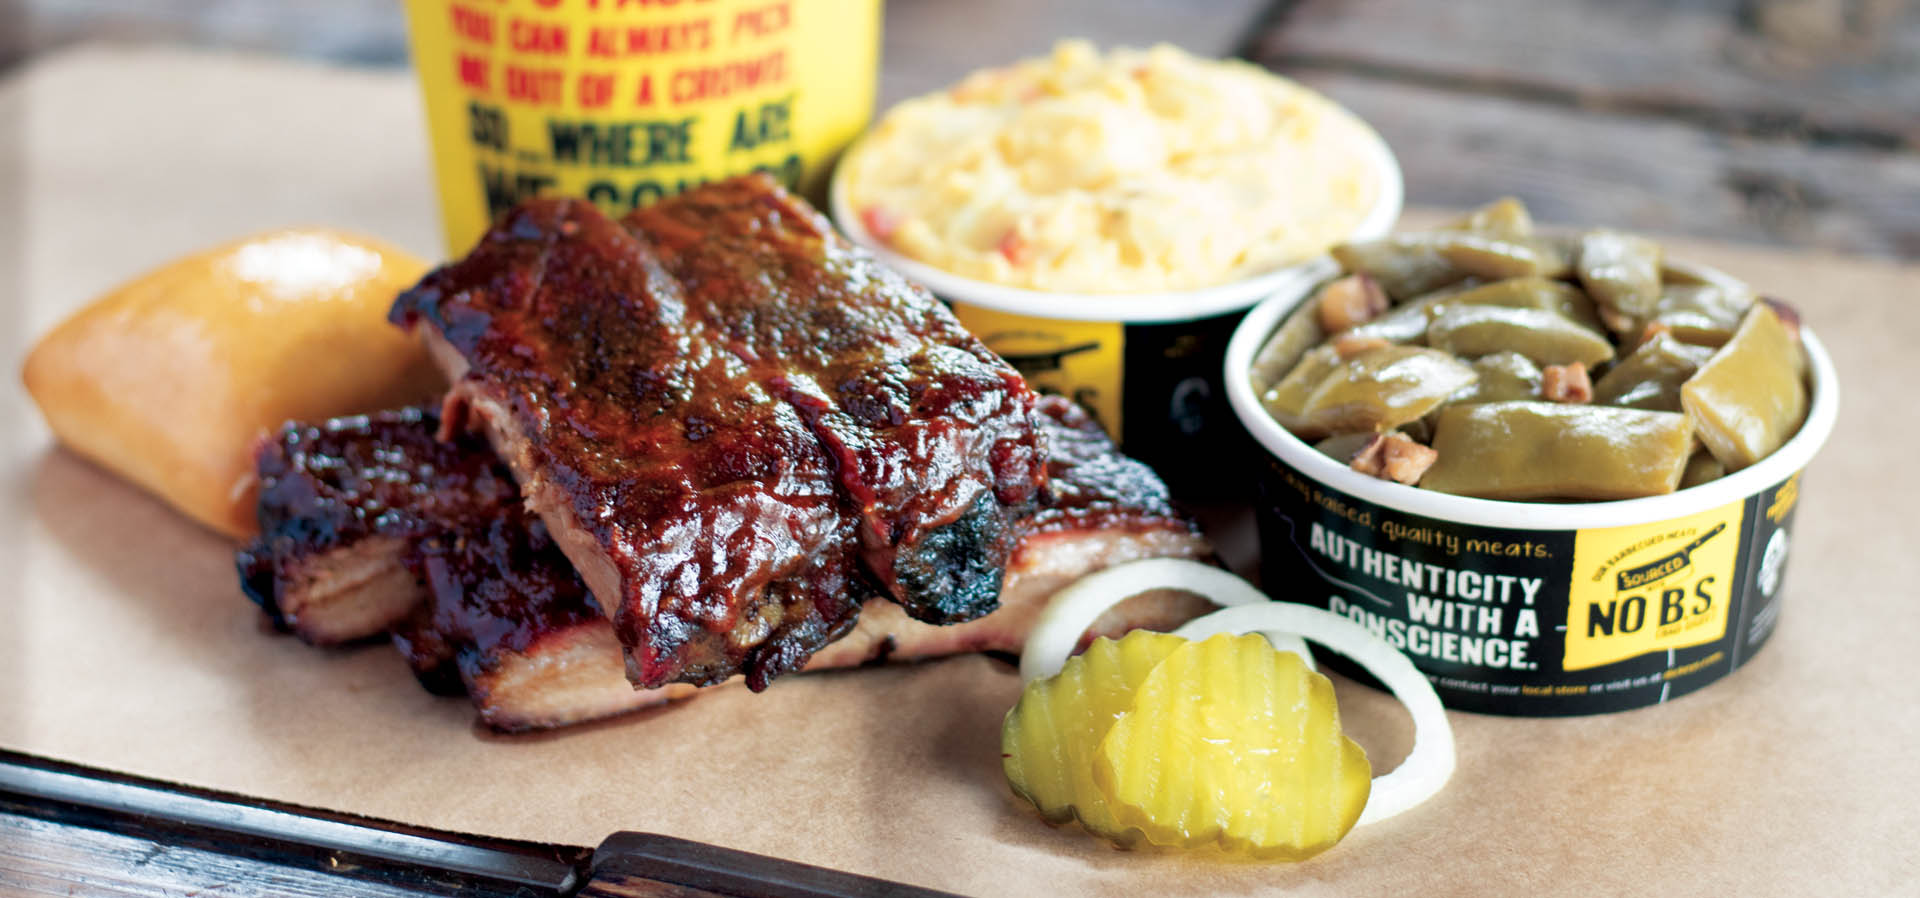 New Dickey's Barbecue Pit in Woodland Hills is a Family Business